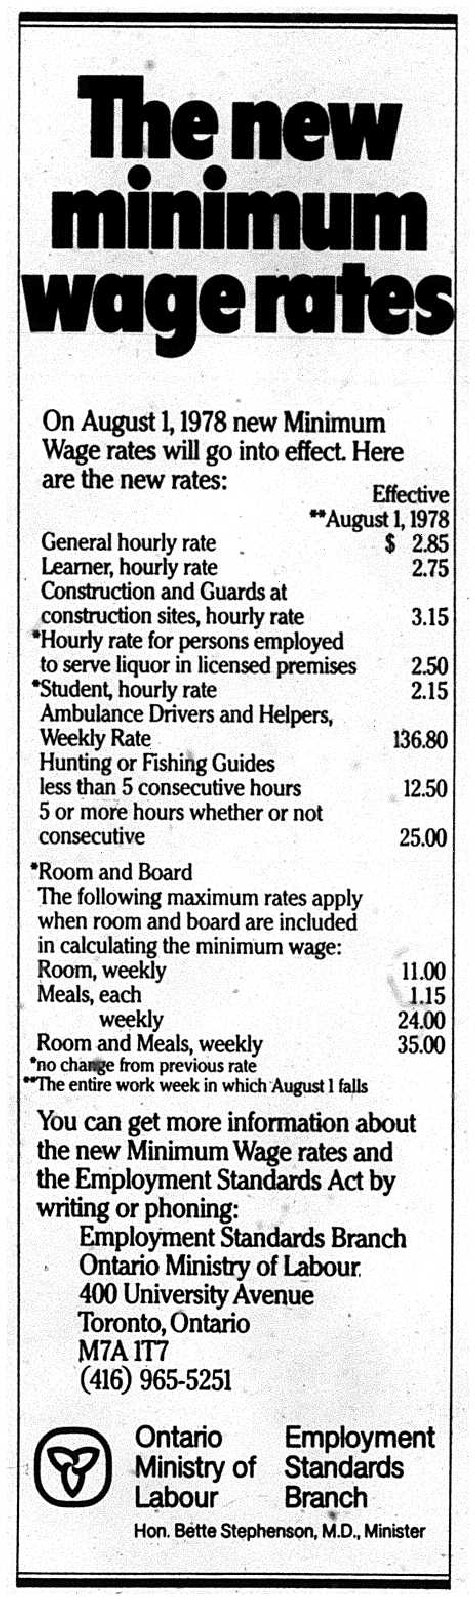 Minimum Wage Rates as of 1978